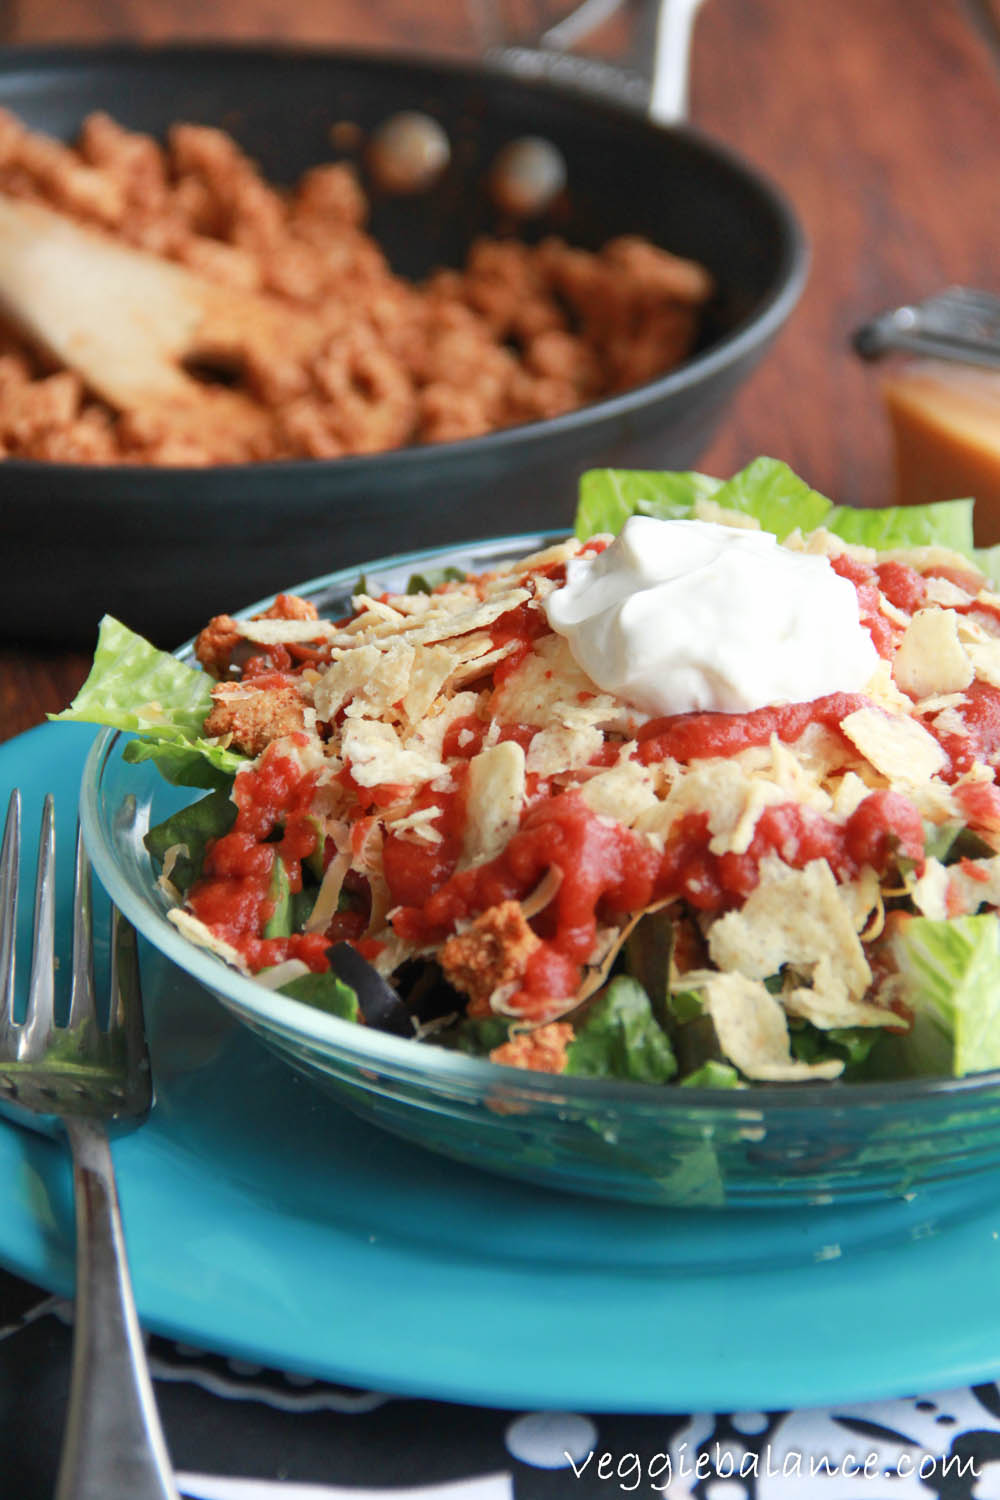 Best Taco Salad Ever with Make your own taco sauce at home with this easy homemade taco sauce recipe.